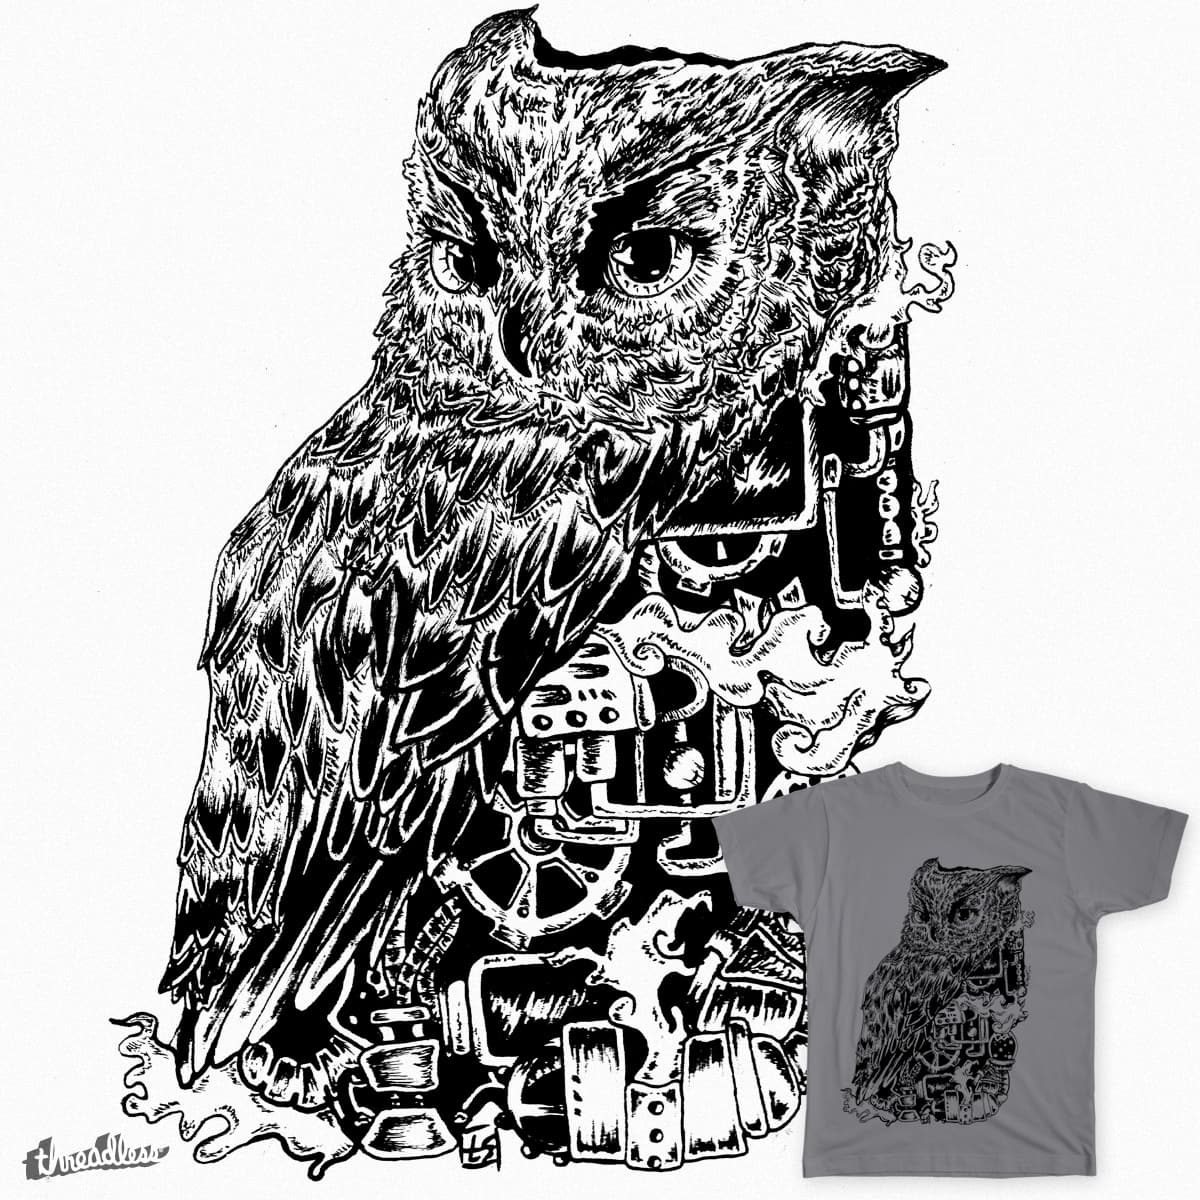 Inked Up Owl Hoodie by cupofmoriartea on Threadless